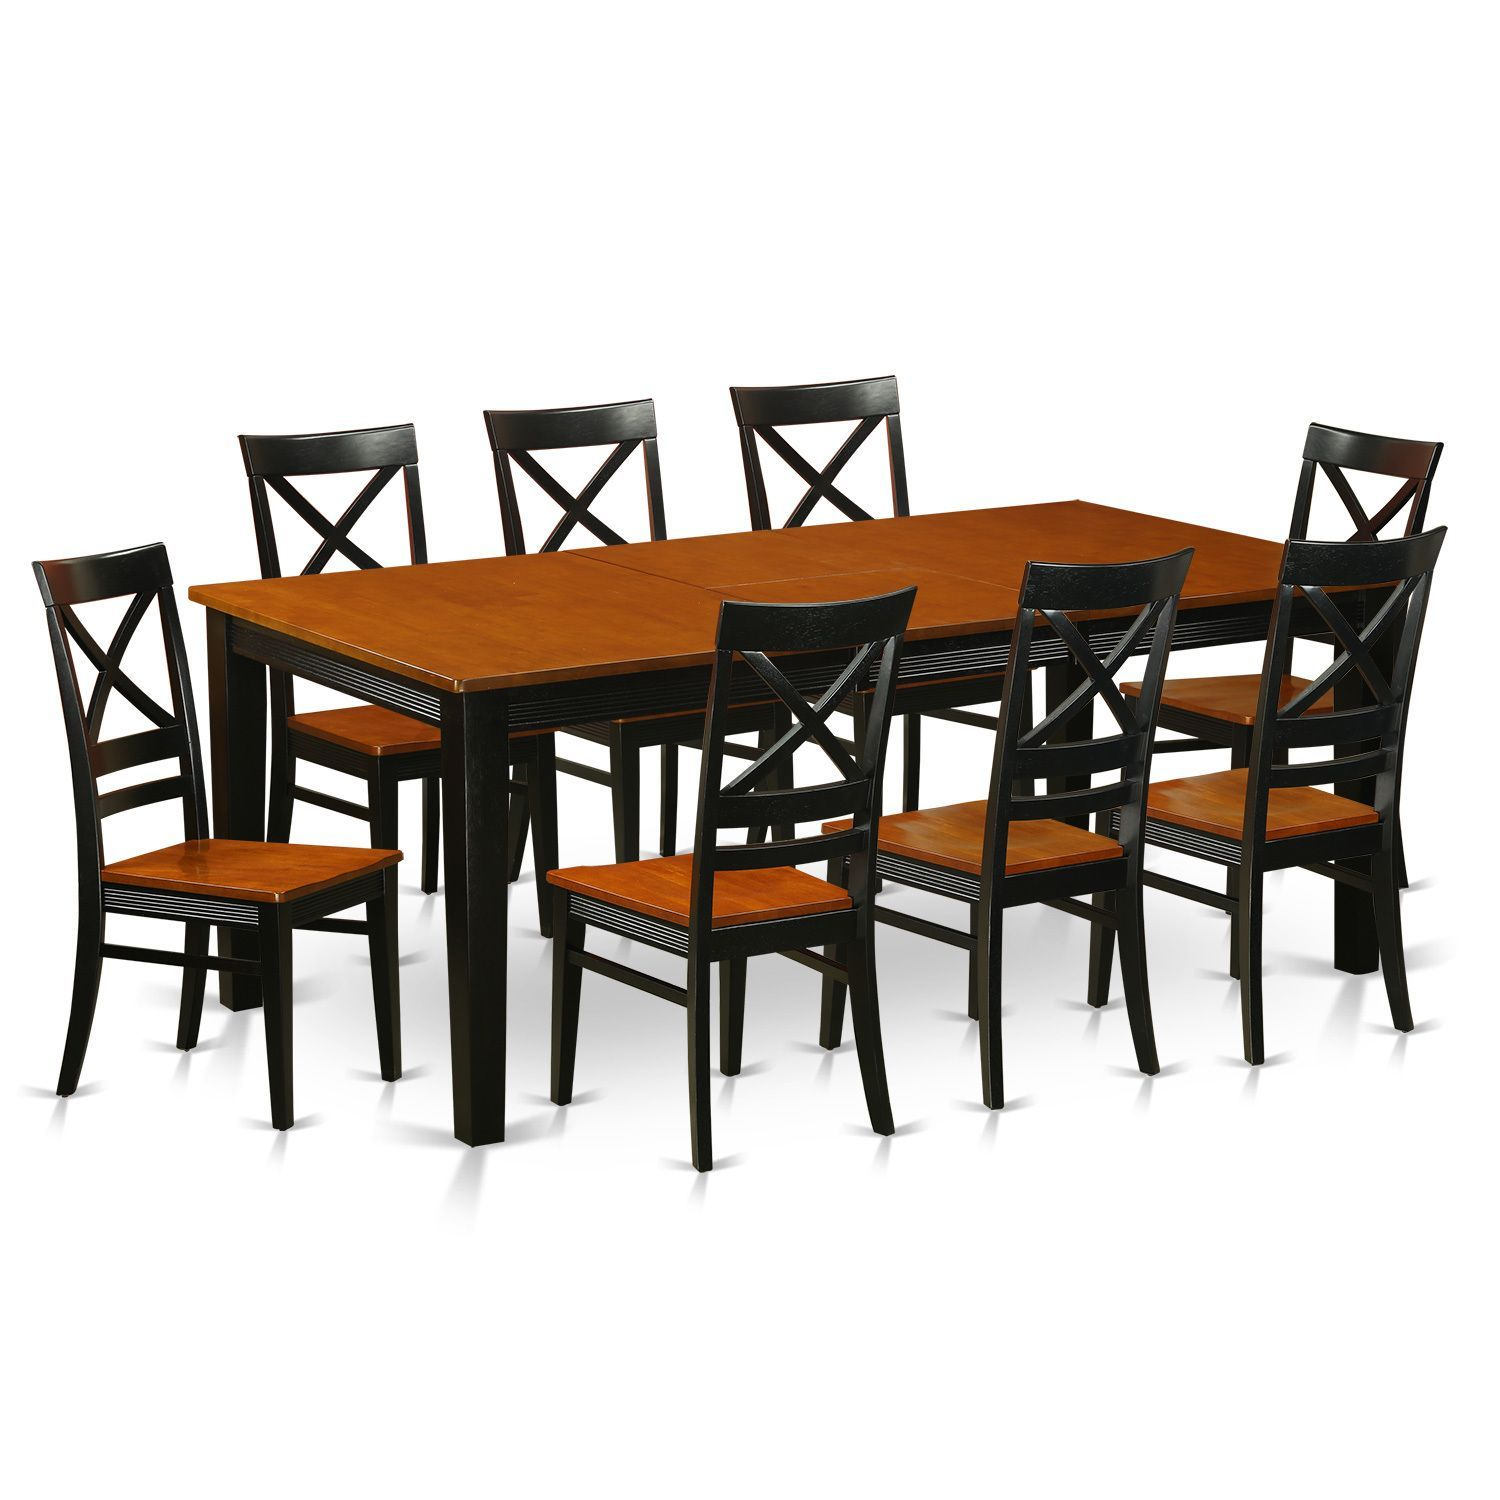 Black brown cherry finish rubberwood dining table with 8 dining chairs black and